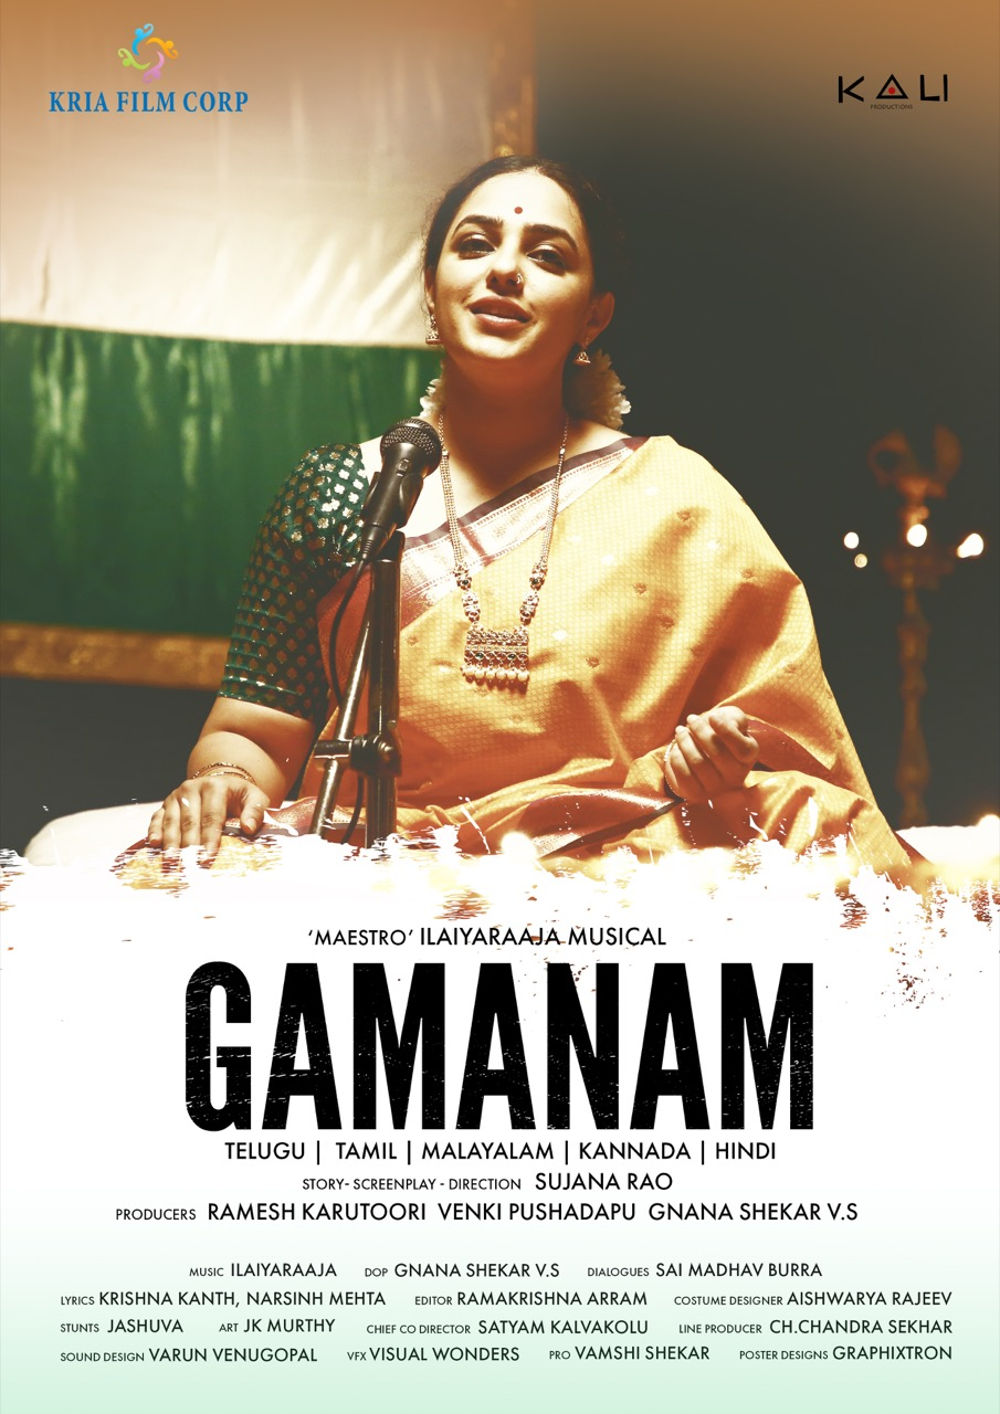 Sharwanand Launches Nithya Menen's First Look In Pan India Film Gamanam